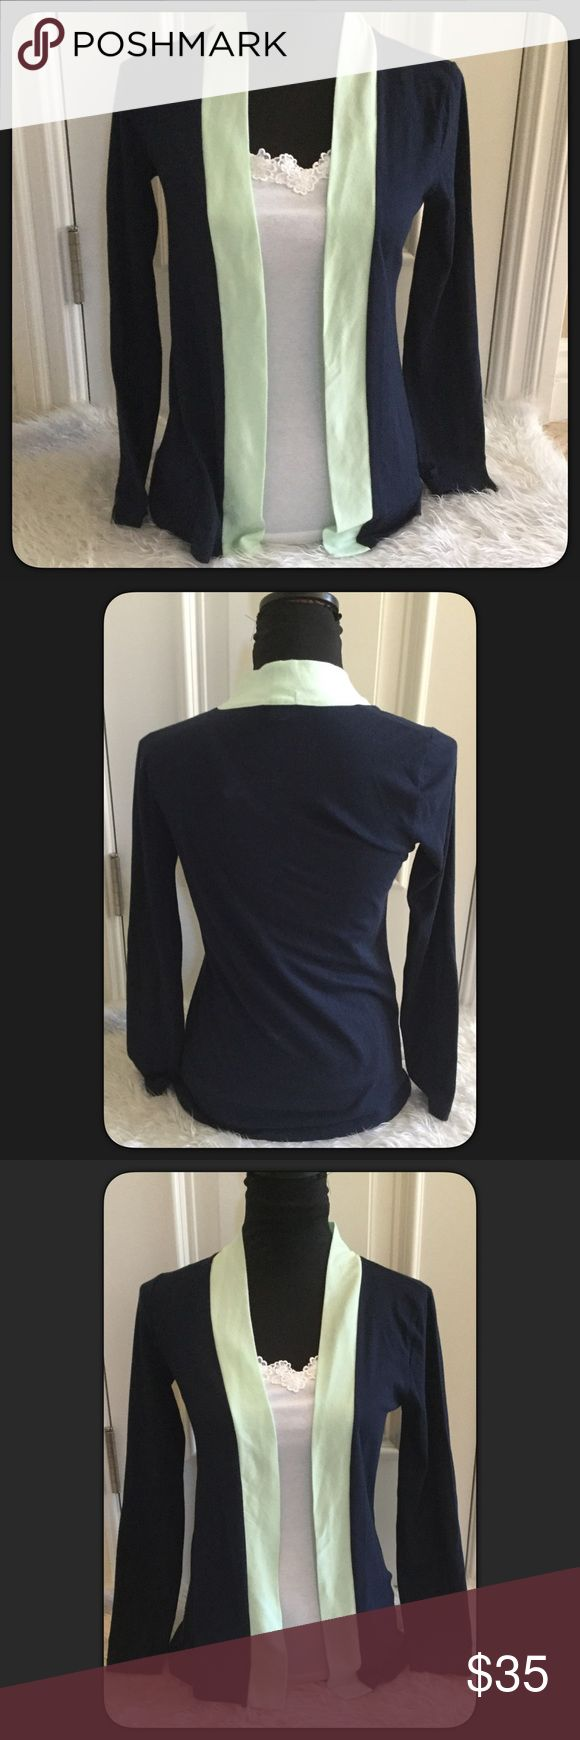 """🆕J. Crew Nautical Cardigan Pretty Navy and Mint Green trim cardigan by J Crew. Size XS. Lightweight great for Spring & Summer. EUC. Worn once it's a little small for me . Length approximately 27"""" Long. Material 60% cotton 40% Polyester J. Crew Sweaters Cardigans"""